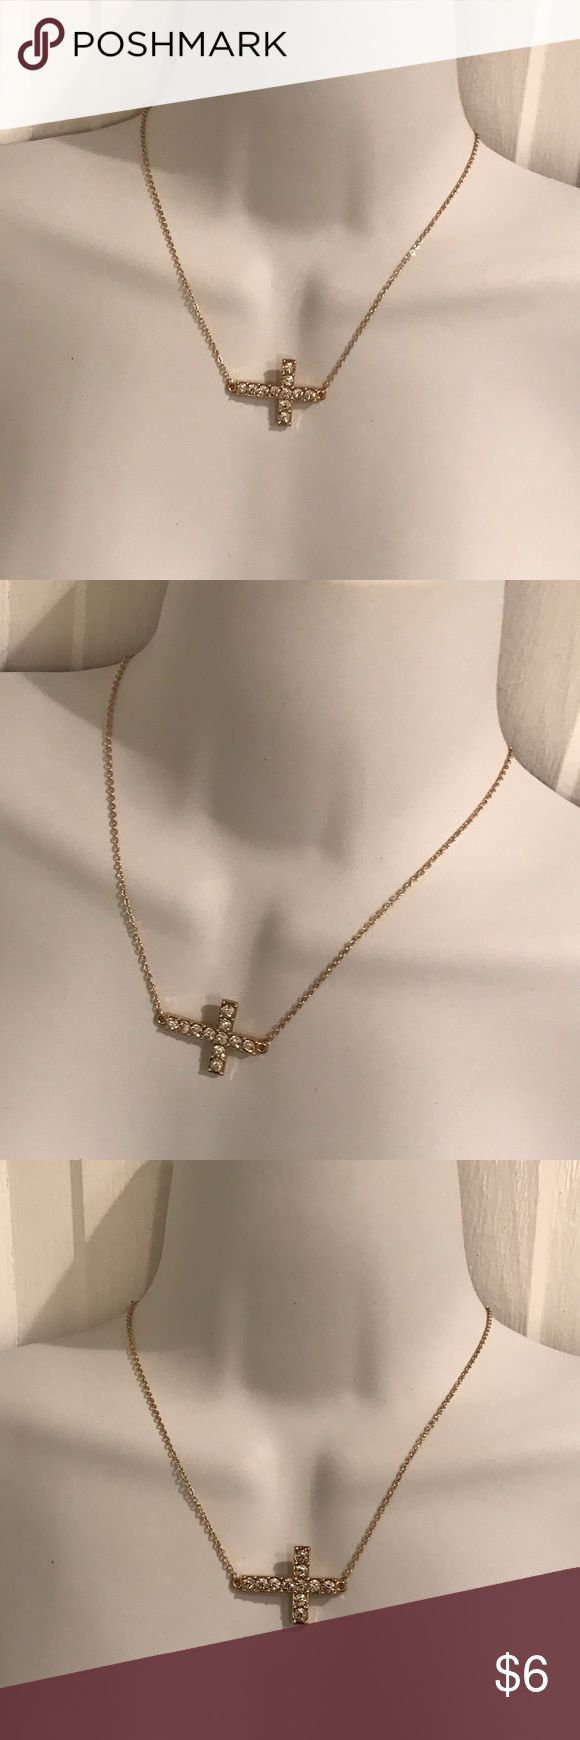 """Sideways crystal cross necklace Gold plated. About 16"""" long with 3"""" extension. Jewelry Necklaces"""